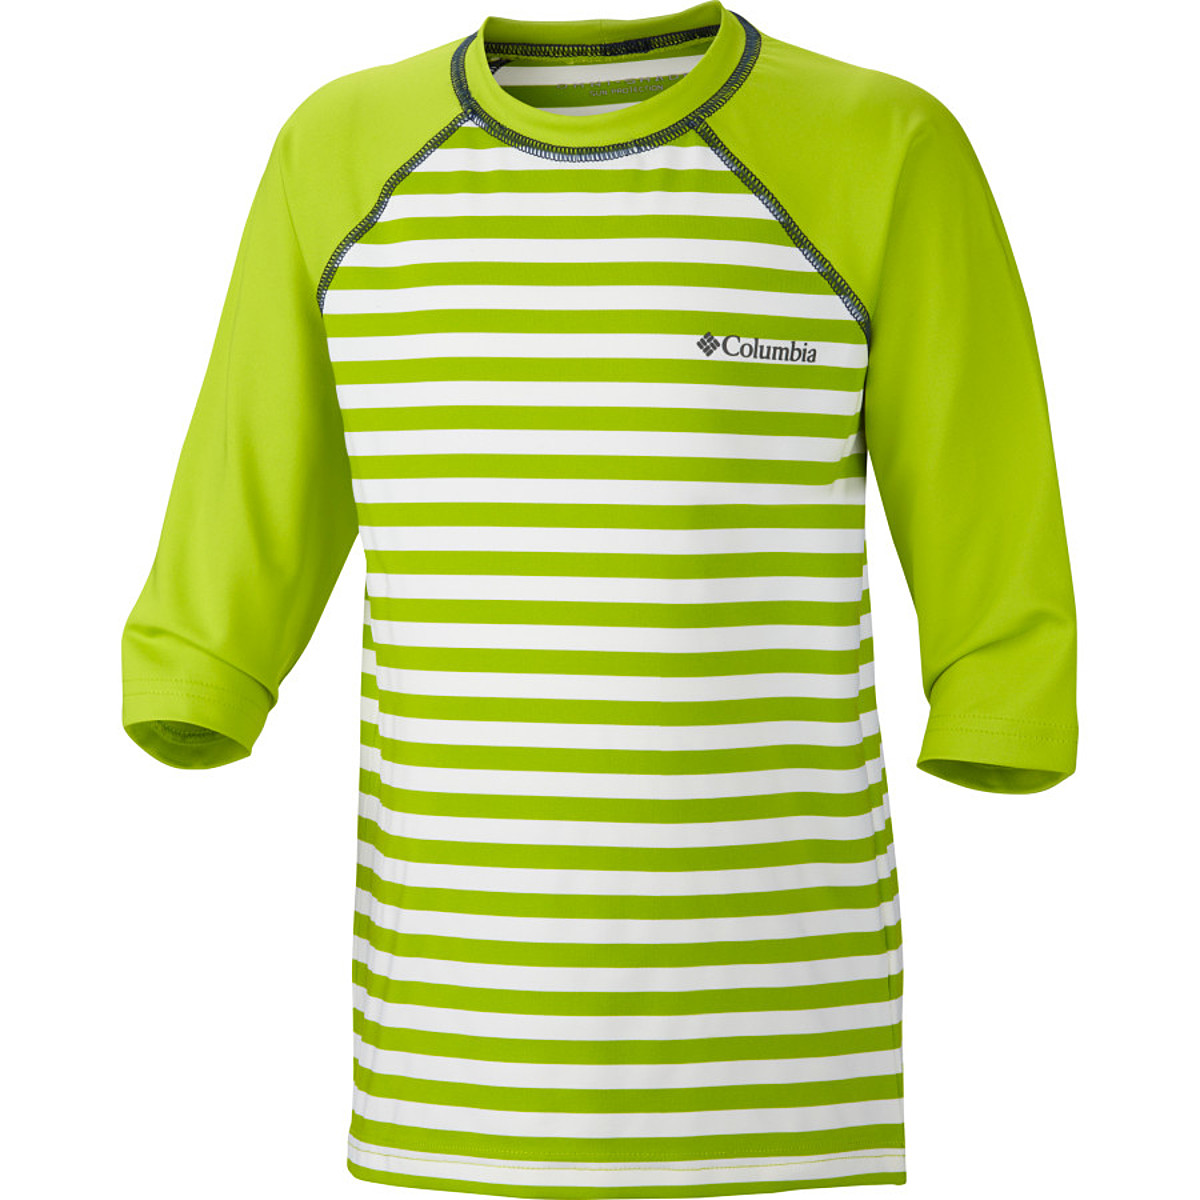 Columbia Mini Breaker Short Sleeve Sunguard